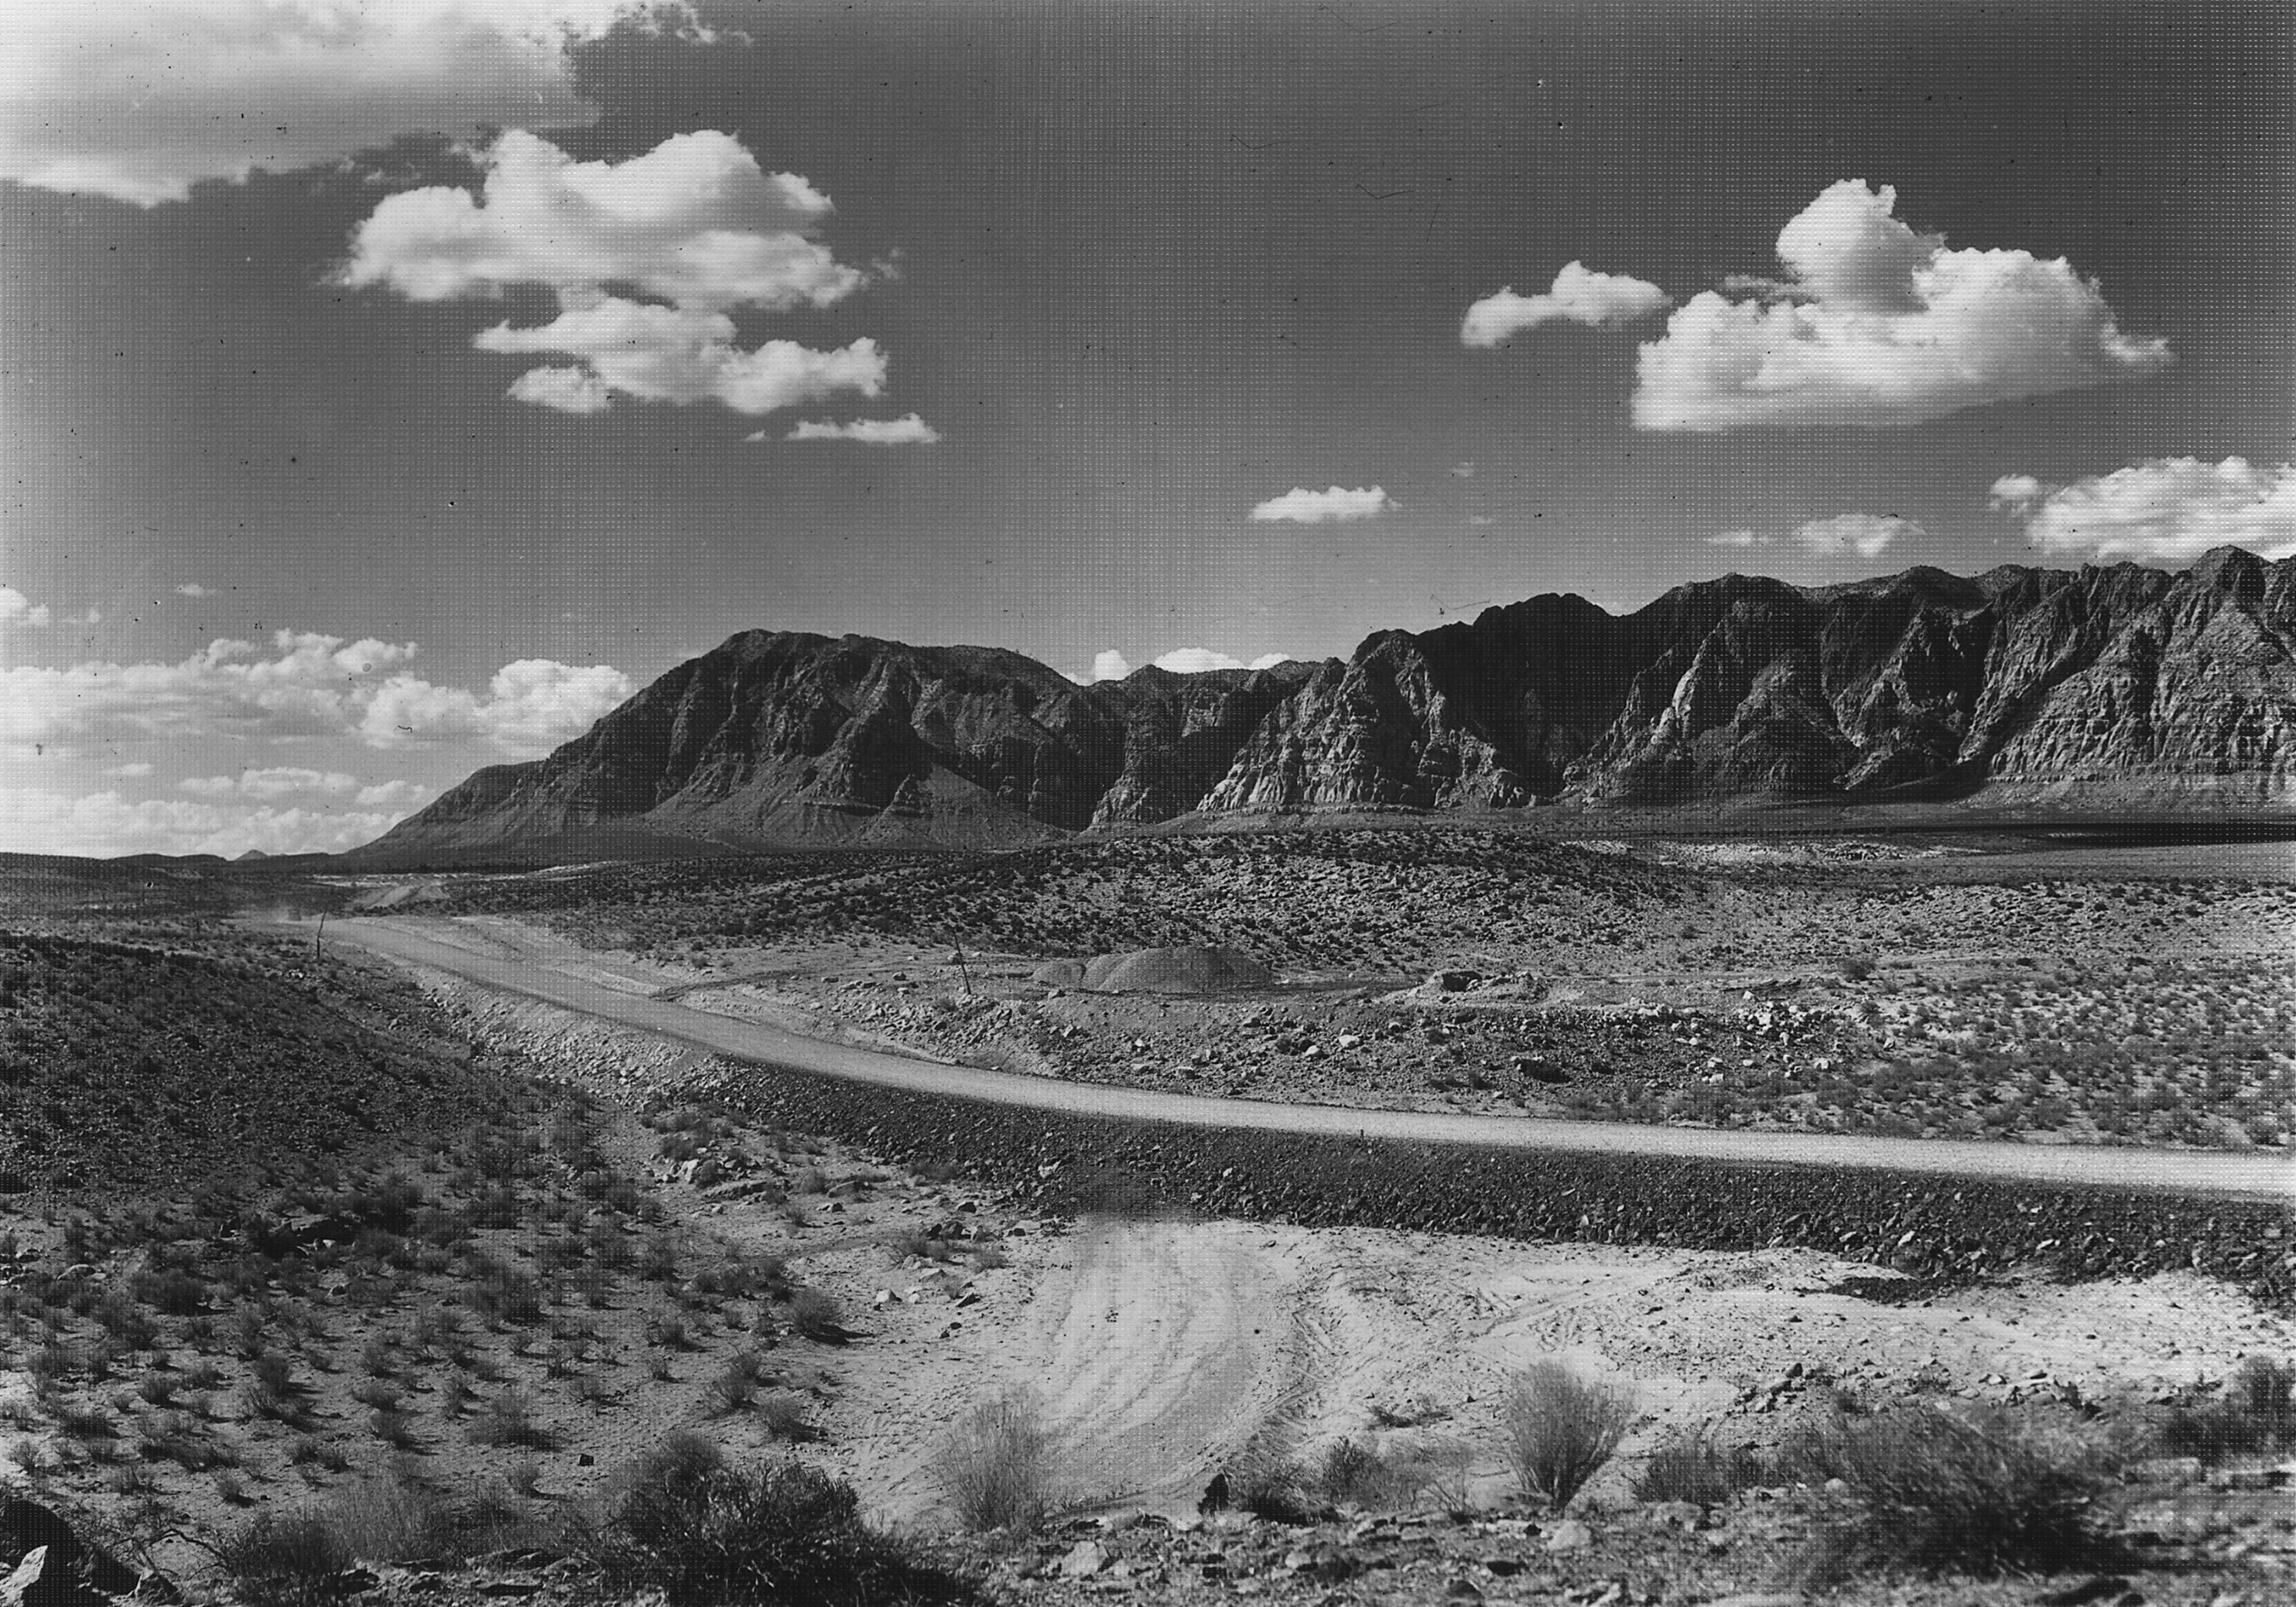 Highway 91 about 5 miles west of Santa Clara in 1929